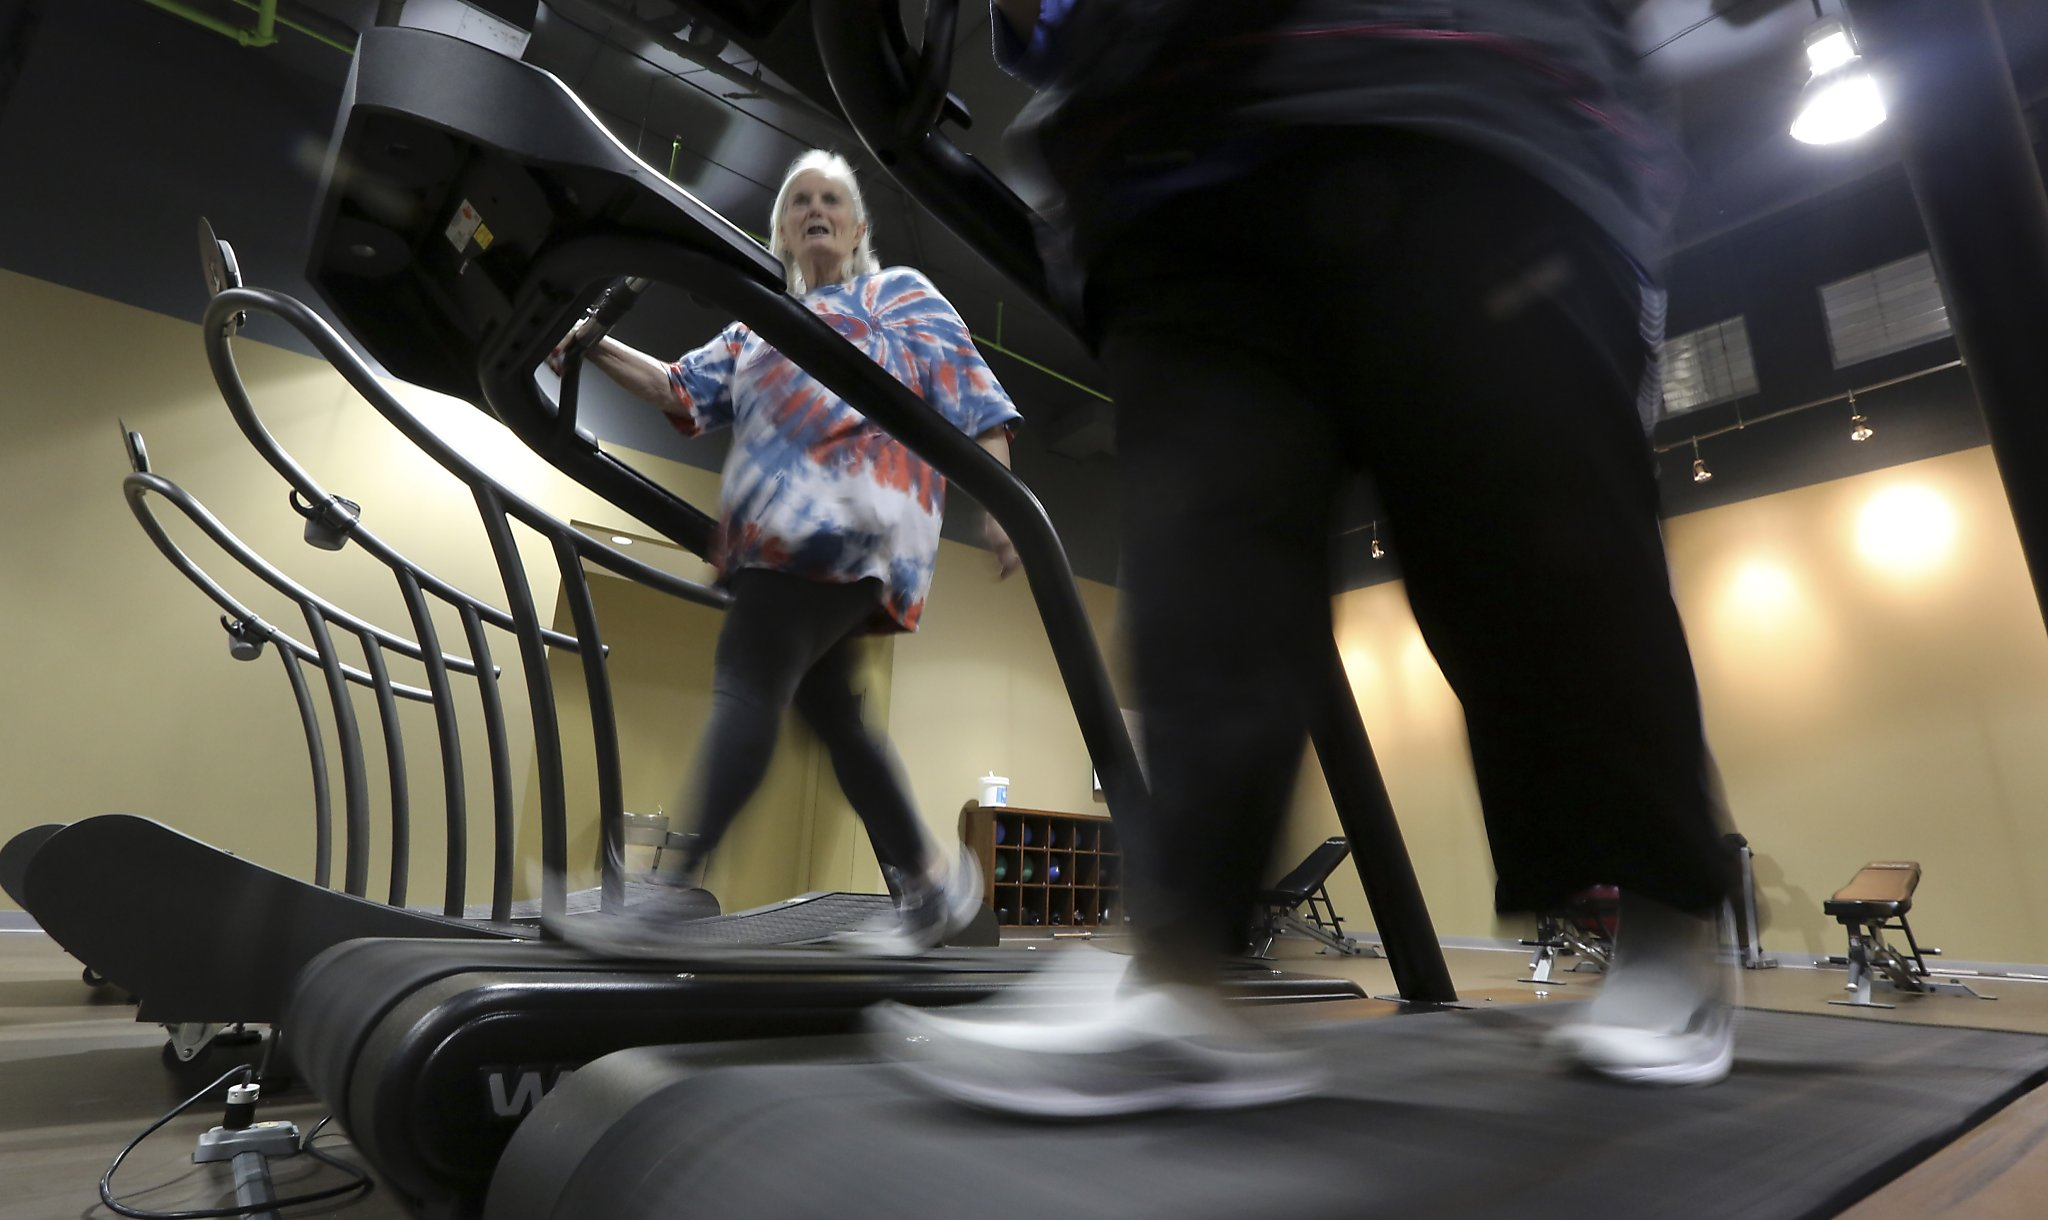 Questions about exercise help patients shed pounds - San Francisco Chronicle